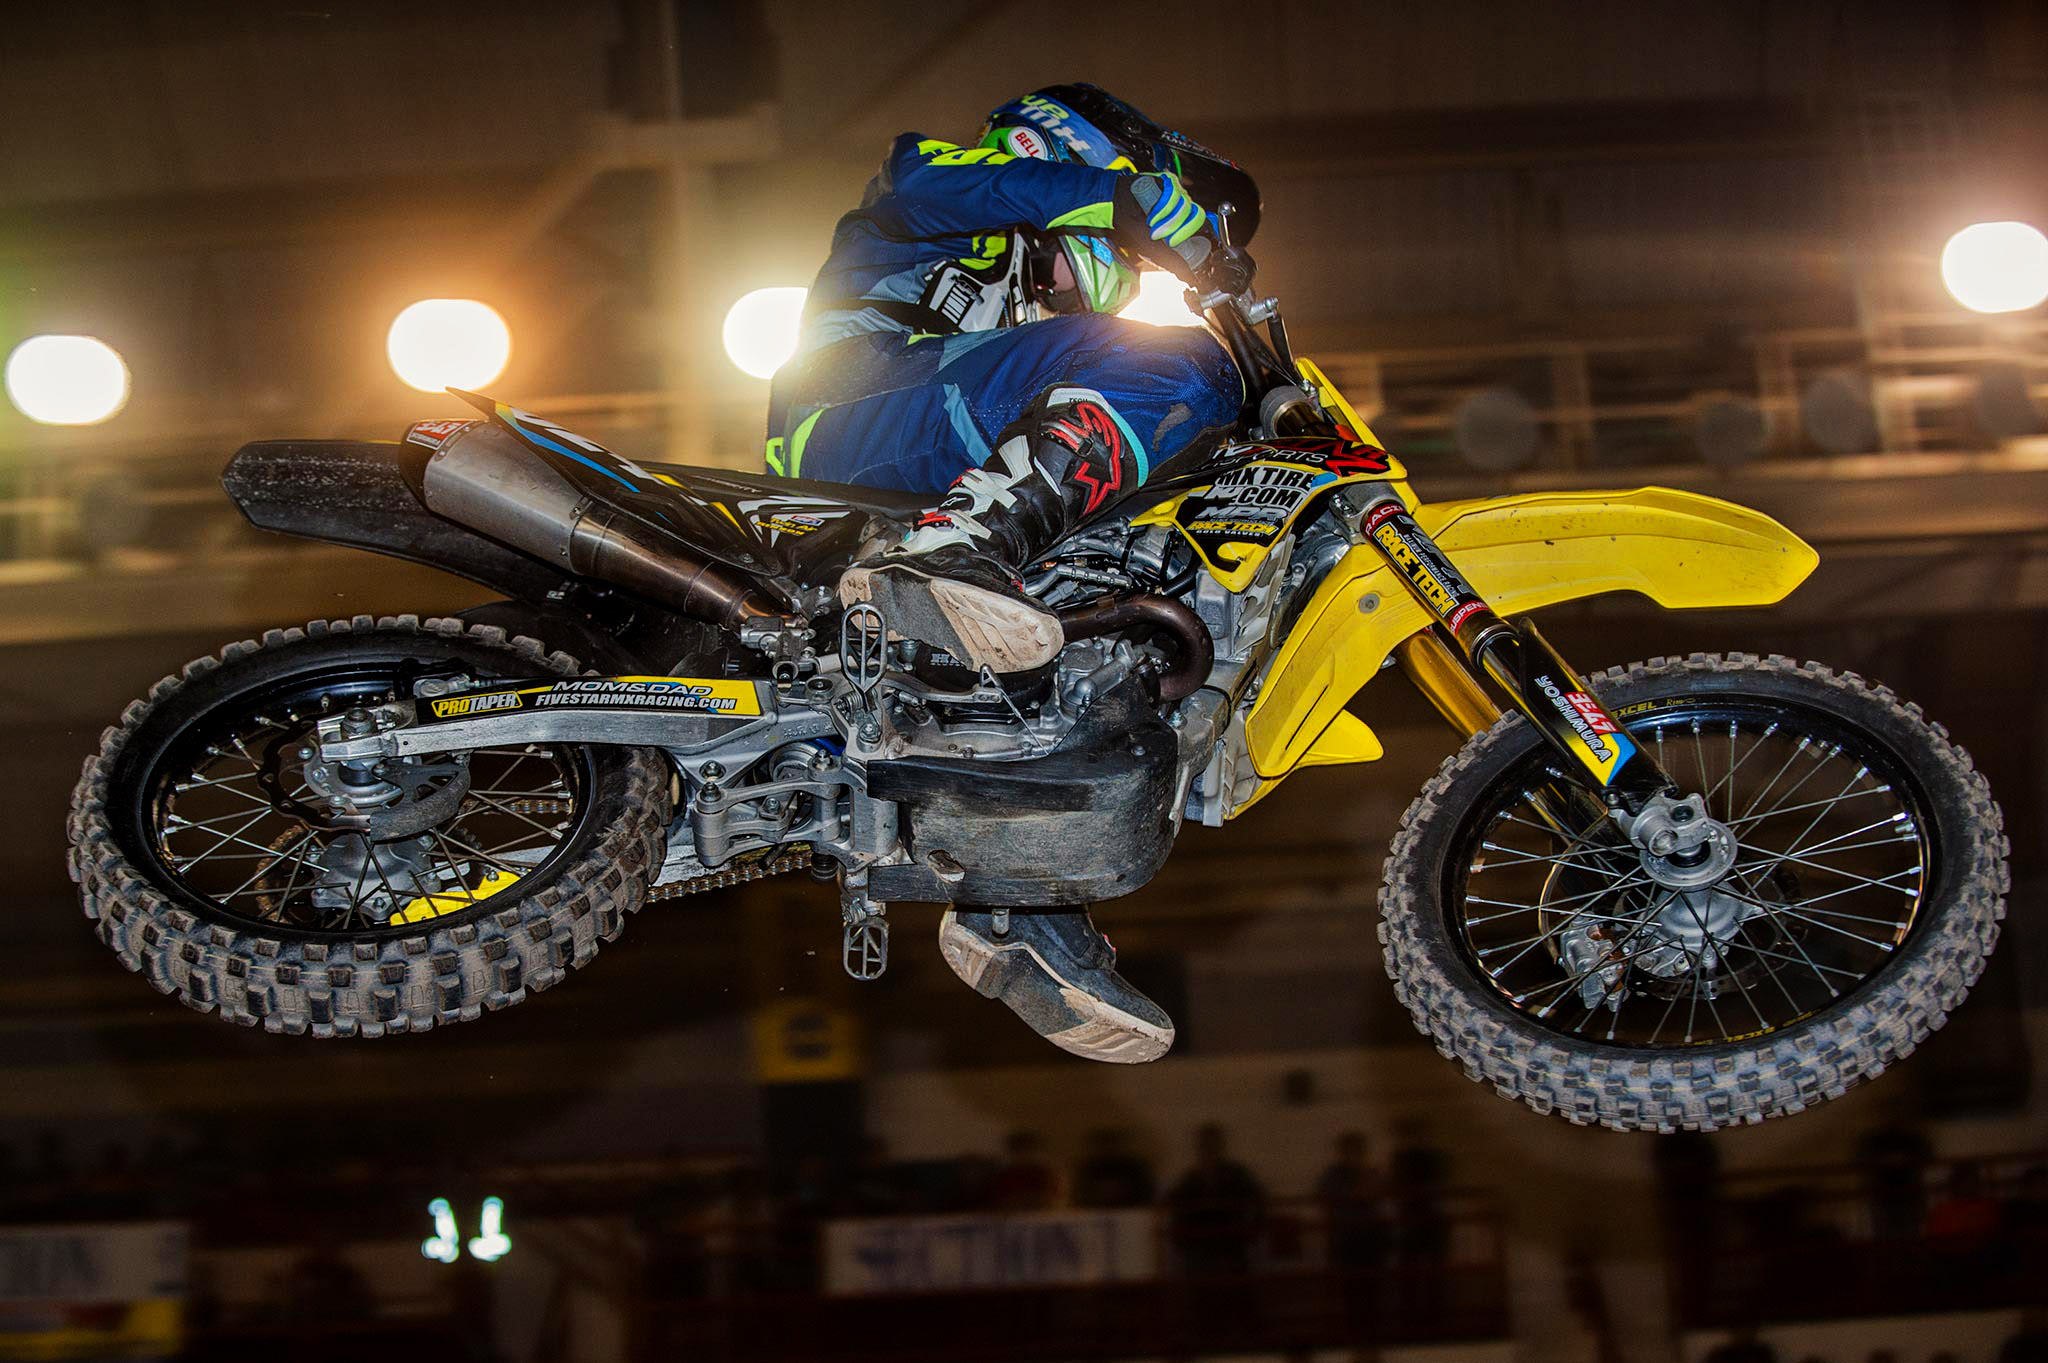 Motorama 2017 - Photos and News From the Pennsylvania Farm Show Complex in Harrisburg PA